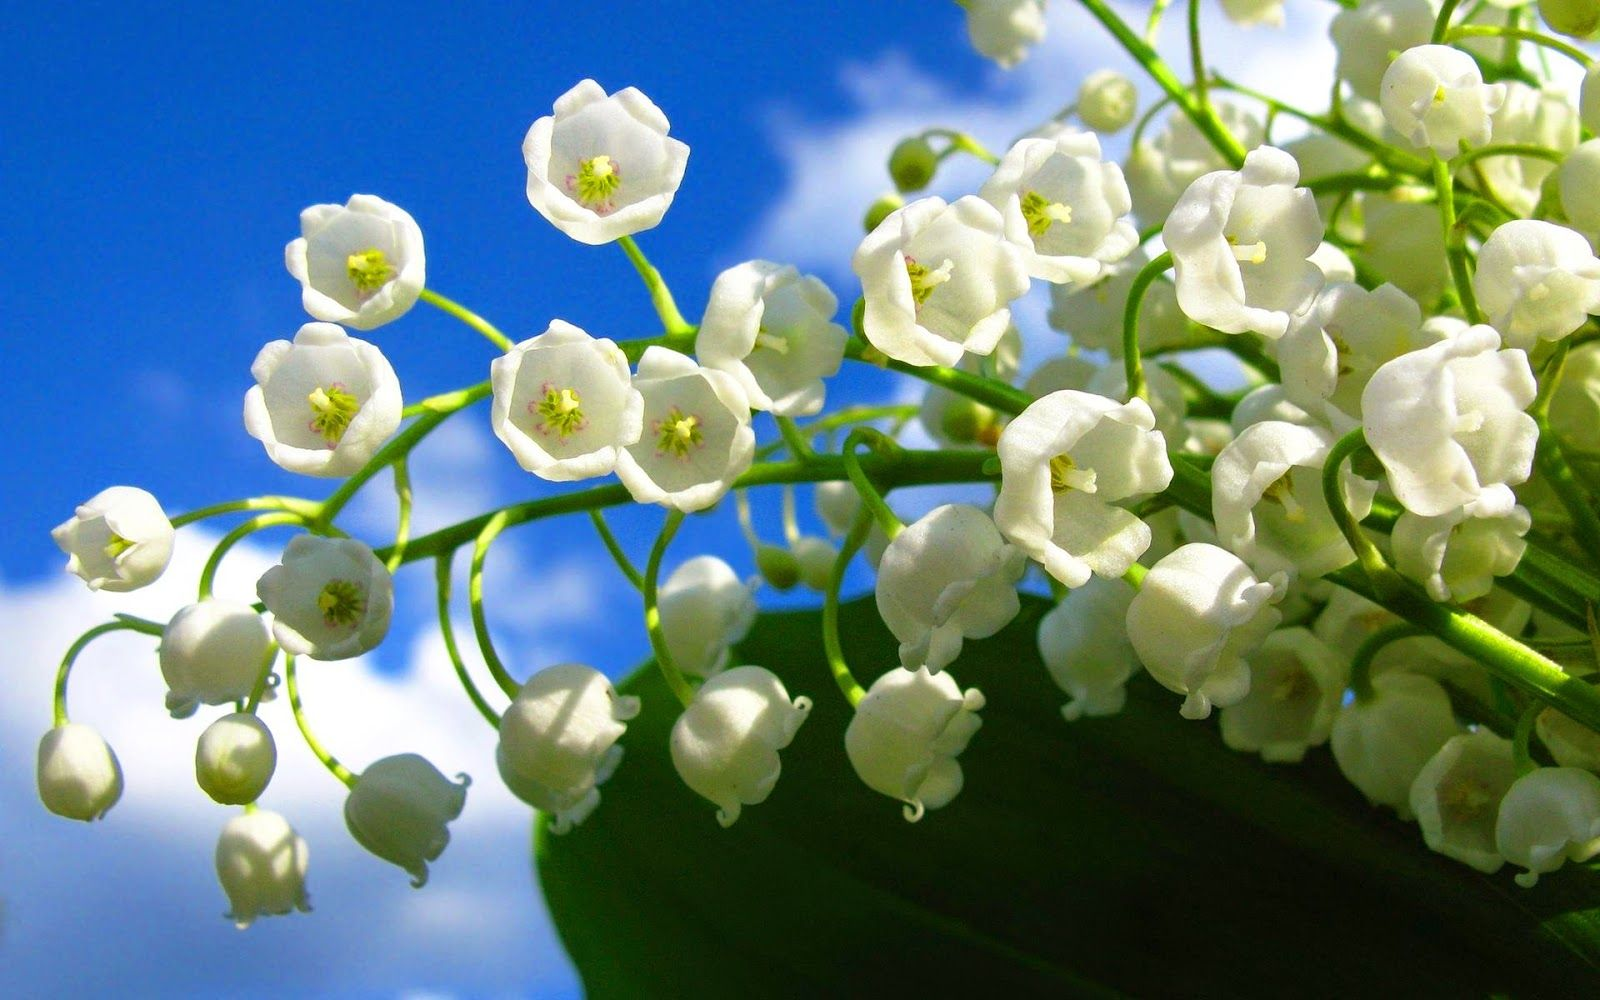 Lirio De Los Valles Valley Flowers Lily Of The Valley Flowers Nature